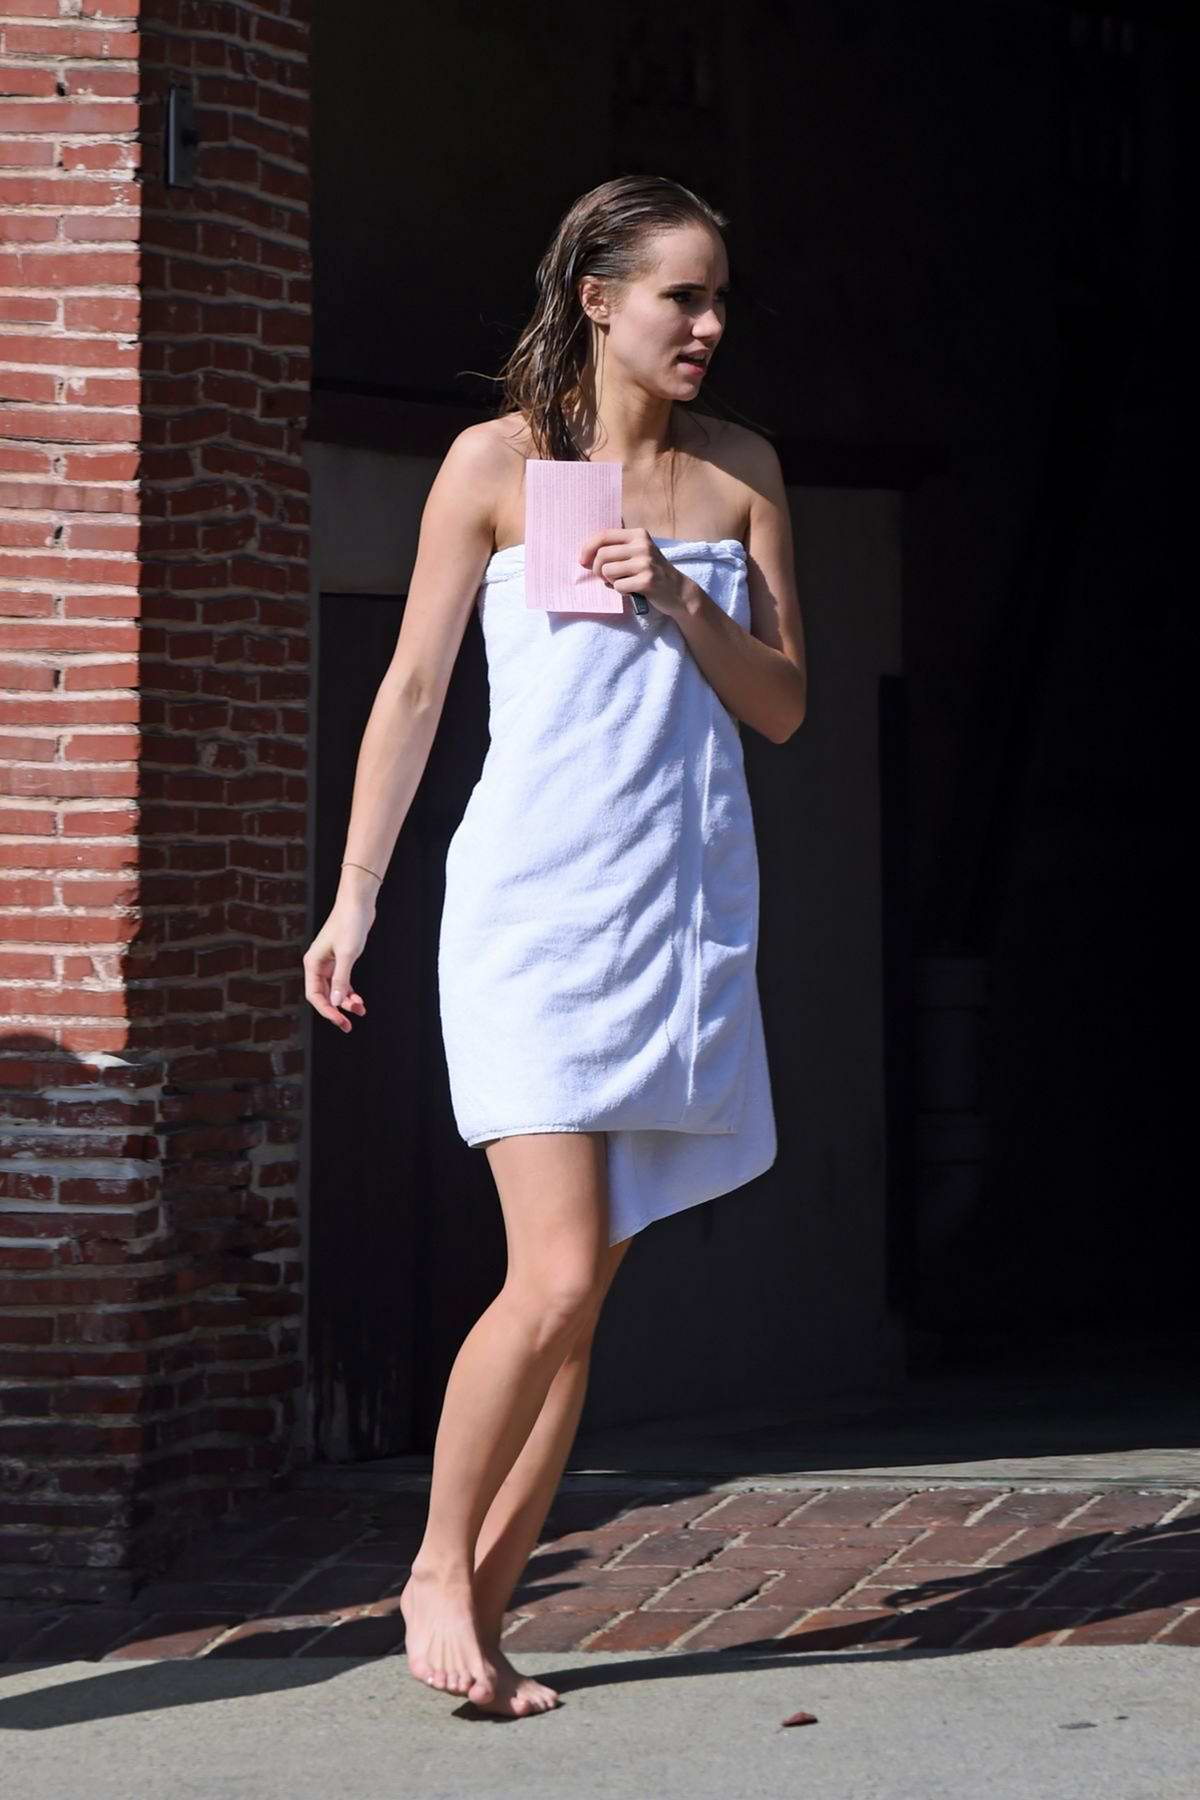 Suki Waterhouse spotted in a wrapped towel during a photoshoot in Los Angeles